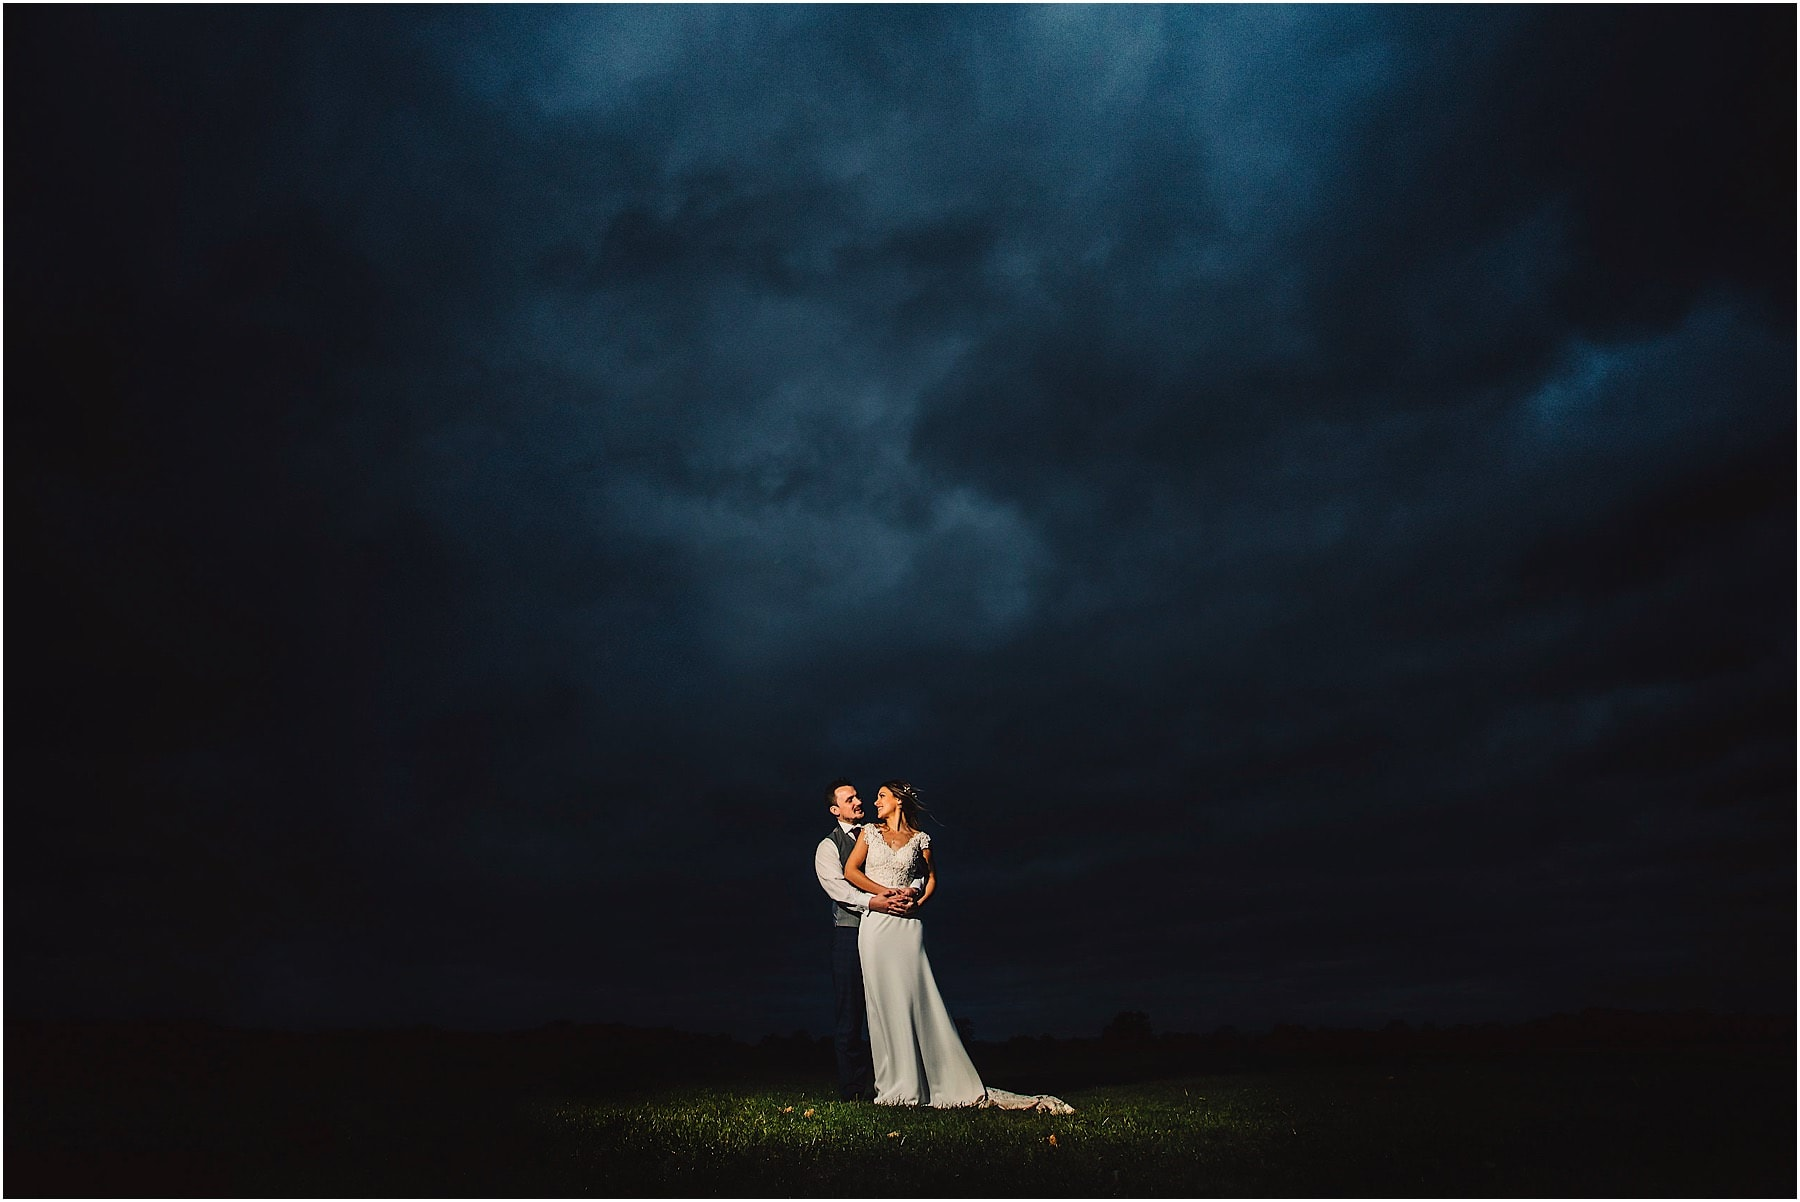 dramatic wedding portrait of bride & groom with a moody sky